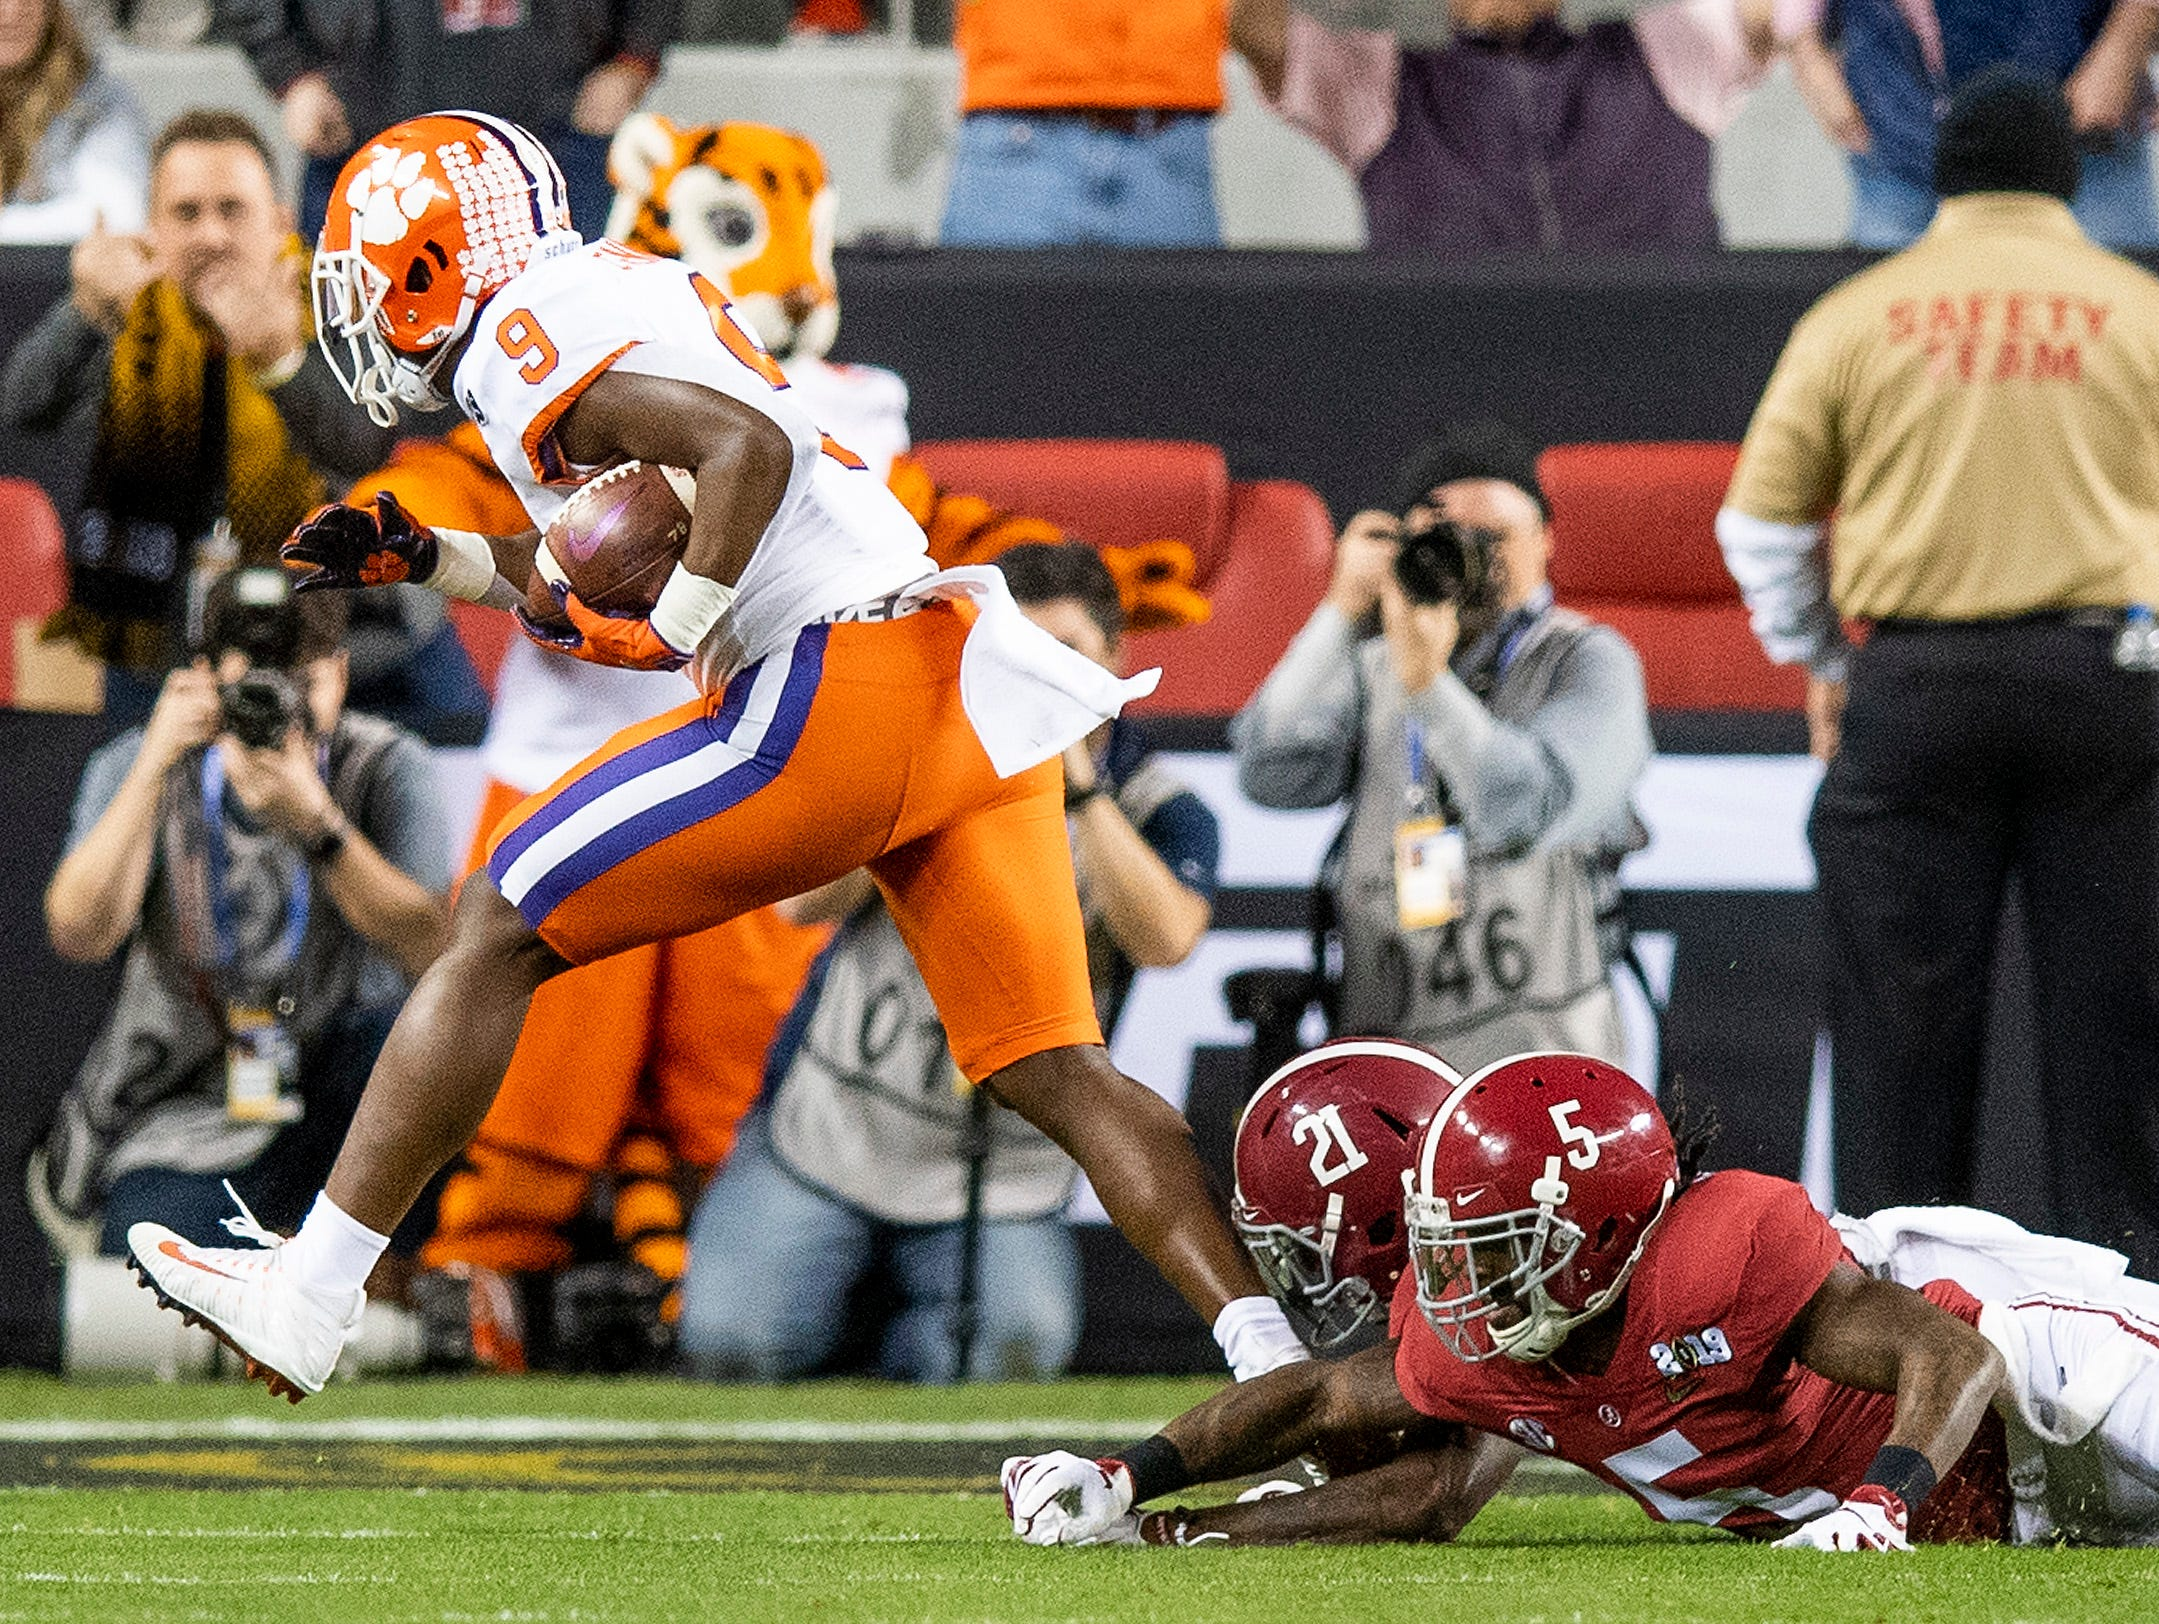 Clemson running back Travis Etienne (9)  gets away from Alabama defensive backs Shyheim Carter (5) and Jared Mayden (21) to score a touchdown in first half action of the College Football Playoff National Championship game at Levi's Stadium in Santa Clara, Ca., on Monday January 7, 2019.